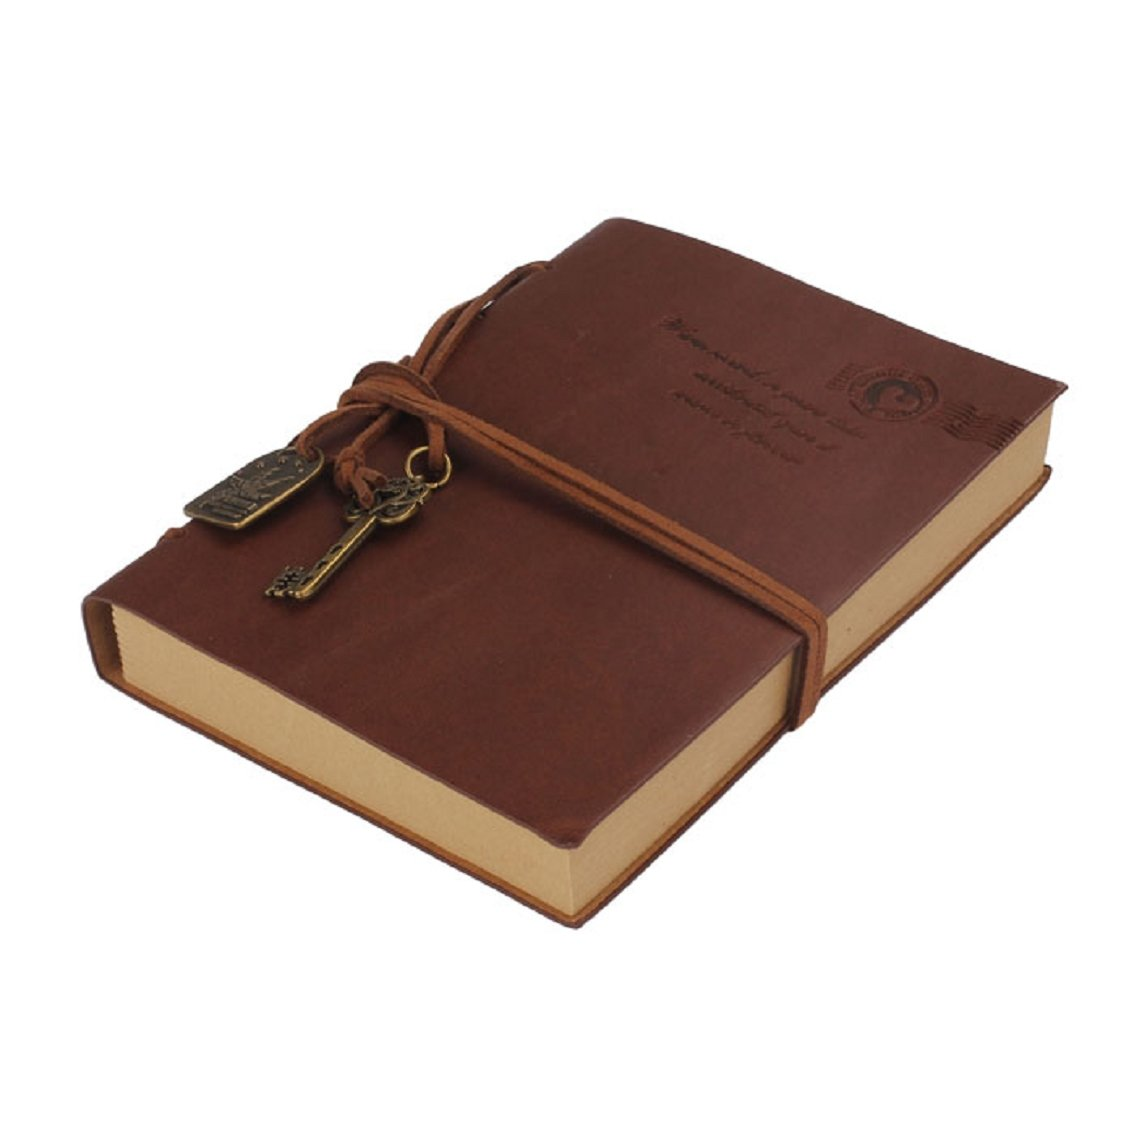 Willtoo(TM) 160 Pages Vintage Bound Notebook Leather Journal Diary (Coffee)